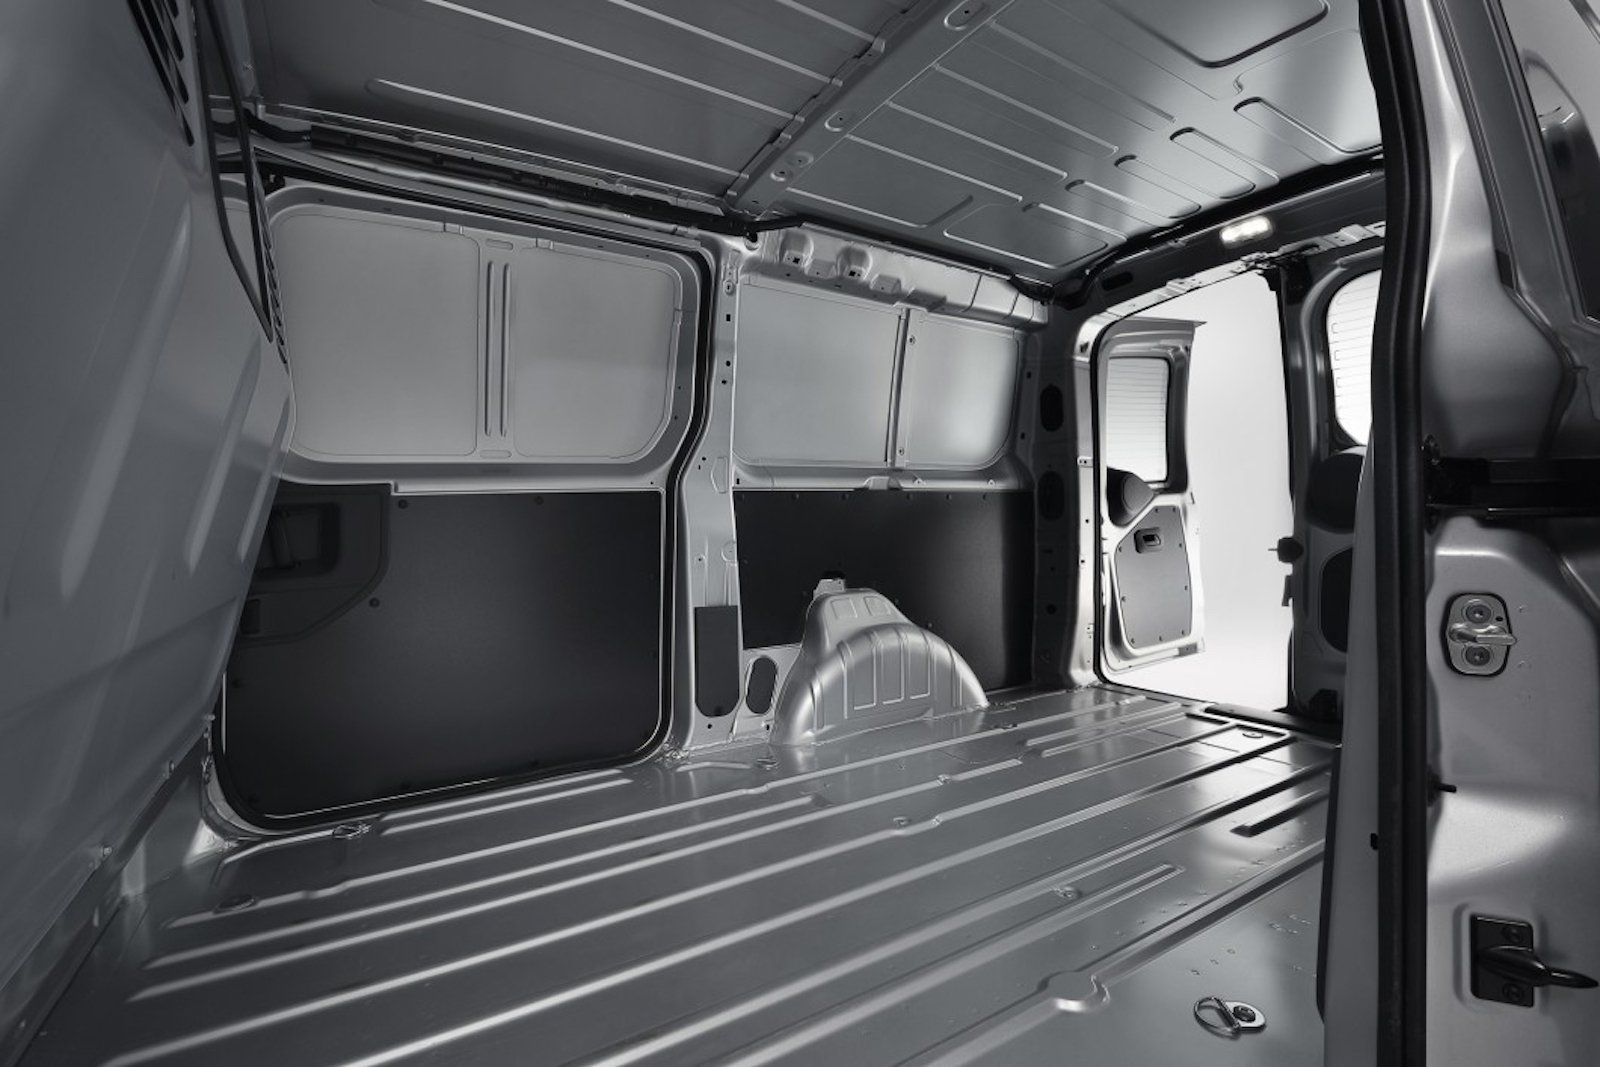 Toyota Proace load bay